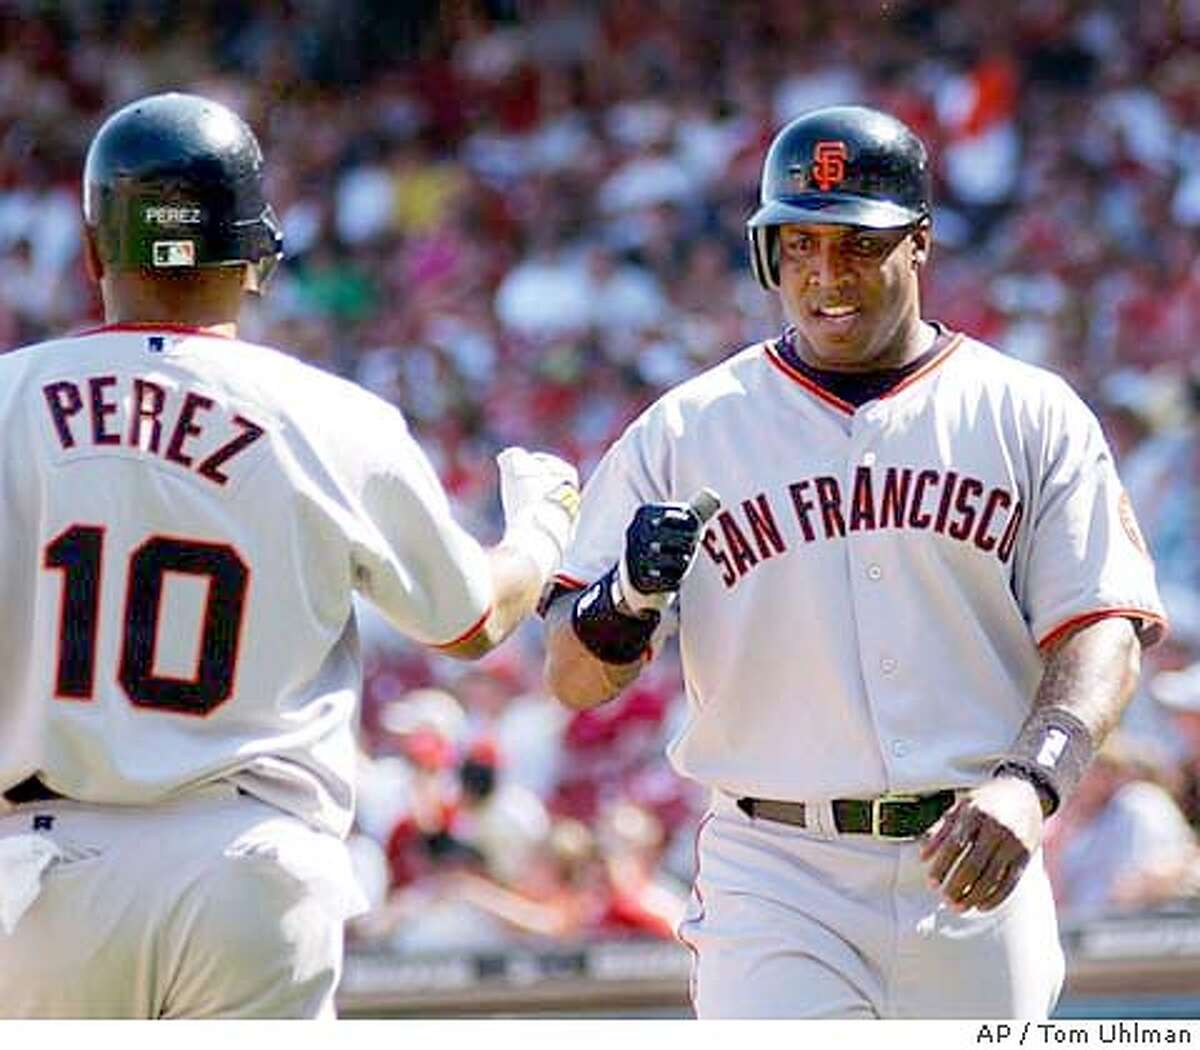 San Francisco Giants' Barry Bonds, right, is congratulated at home plate by Neifi Perez, left, after scoring the go-ahead run on a Deivi Cruz sacrifice fly off Cincinnati Reds' Danny Graves in the 10th inning, Sunday, May 9, 2004, in Cincinnati. The Giants won 7-6. (AP Photo/Tom Uhlman)